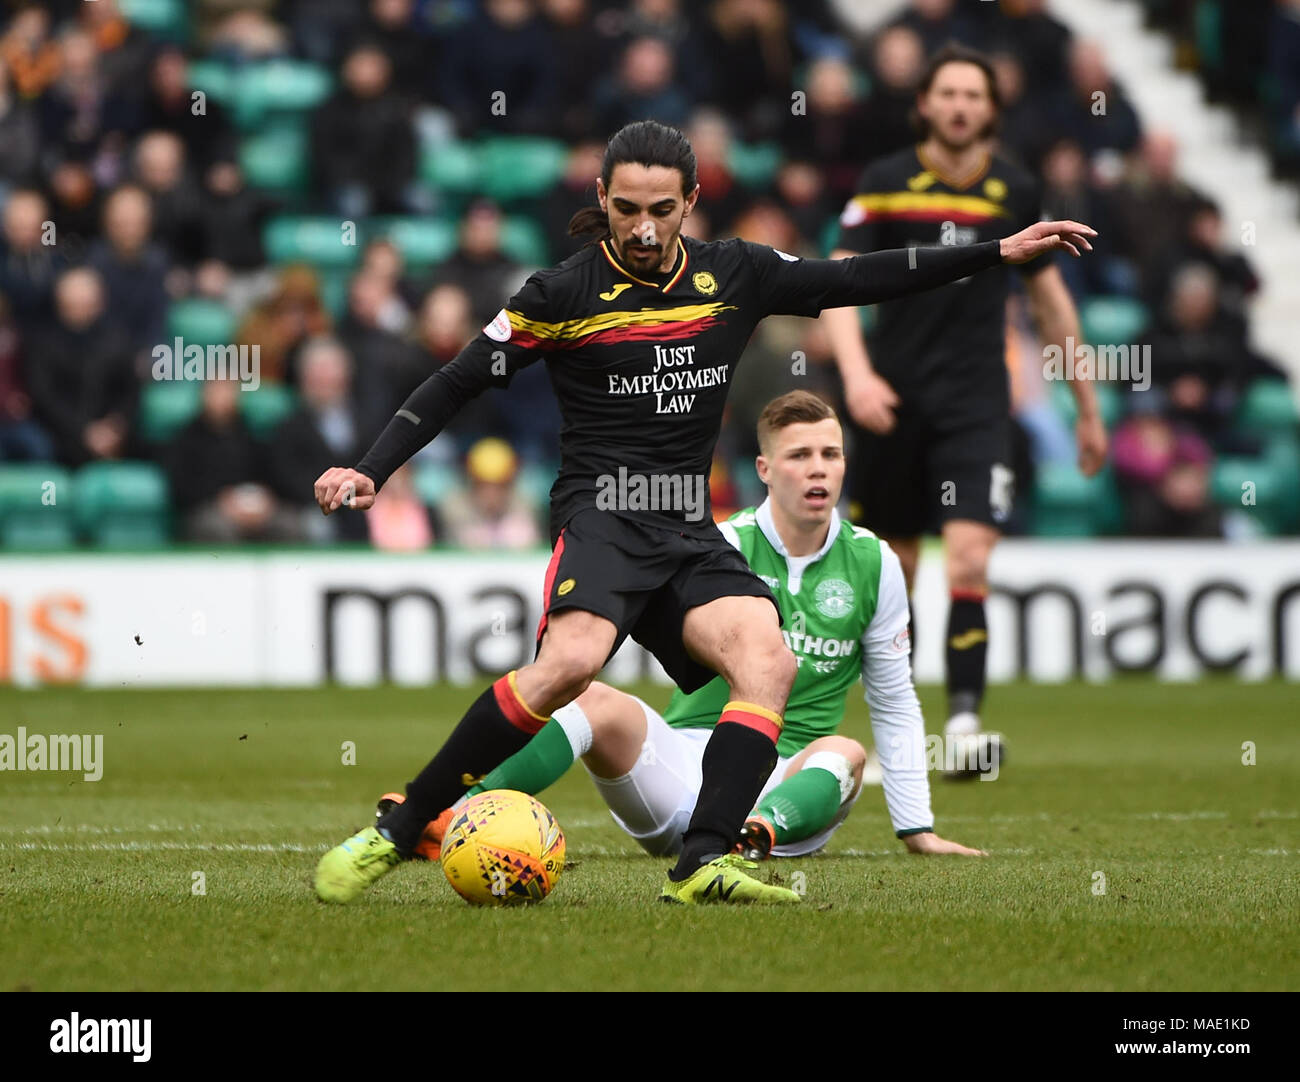 Scottish Premiereship, Hibernian v Partick Thistle, Edinburgh, Midlothian, UK. 31,03, 2018. Pic shows:  Partick Thistle midfielder Ryan Edwards escapes the attention of Hibs' Florian Kamberi during the  Scottish Premiereship clash between Hibernian and Partick Thistle at Easter Road Stadium, Edinburgh.  Credit: Alamy/Ian Jacobs - Stock Image